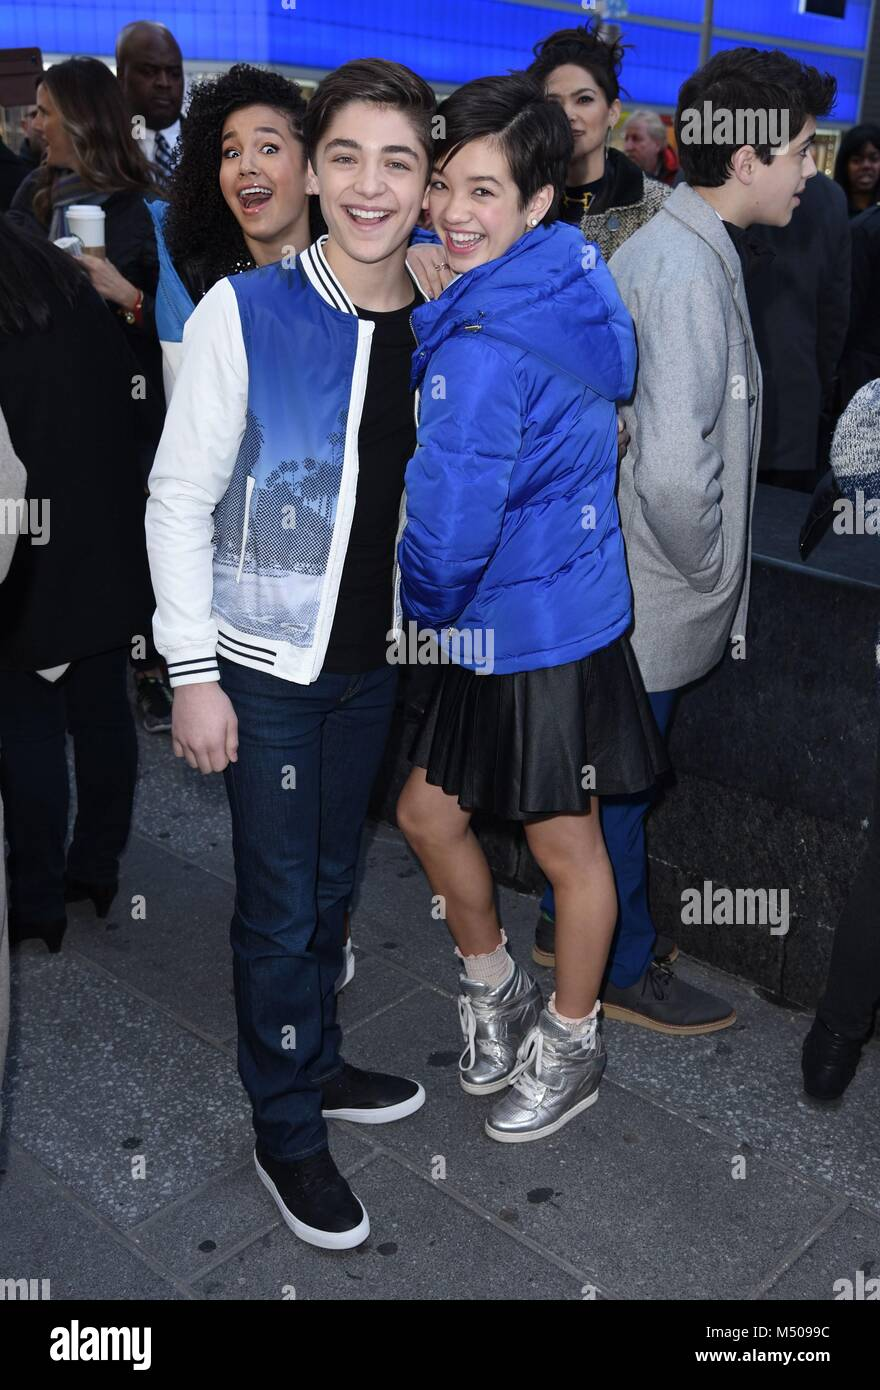 New York, NY, USA. 19th Feb, 2018. Asher Angel, Peyton Elizabeth Lee, seen at Good Morning America to promote ANDI - Stock Image